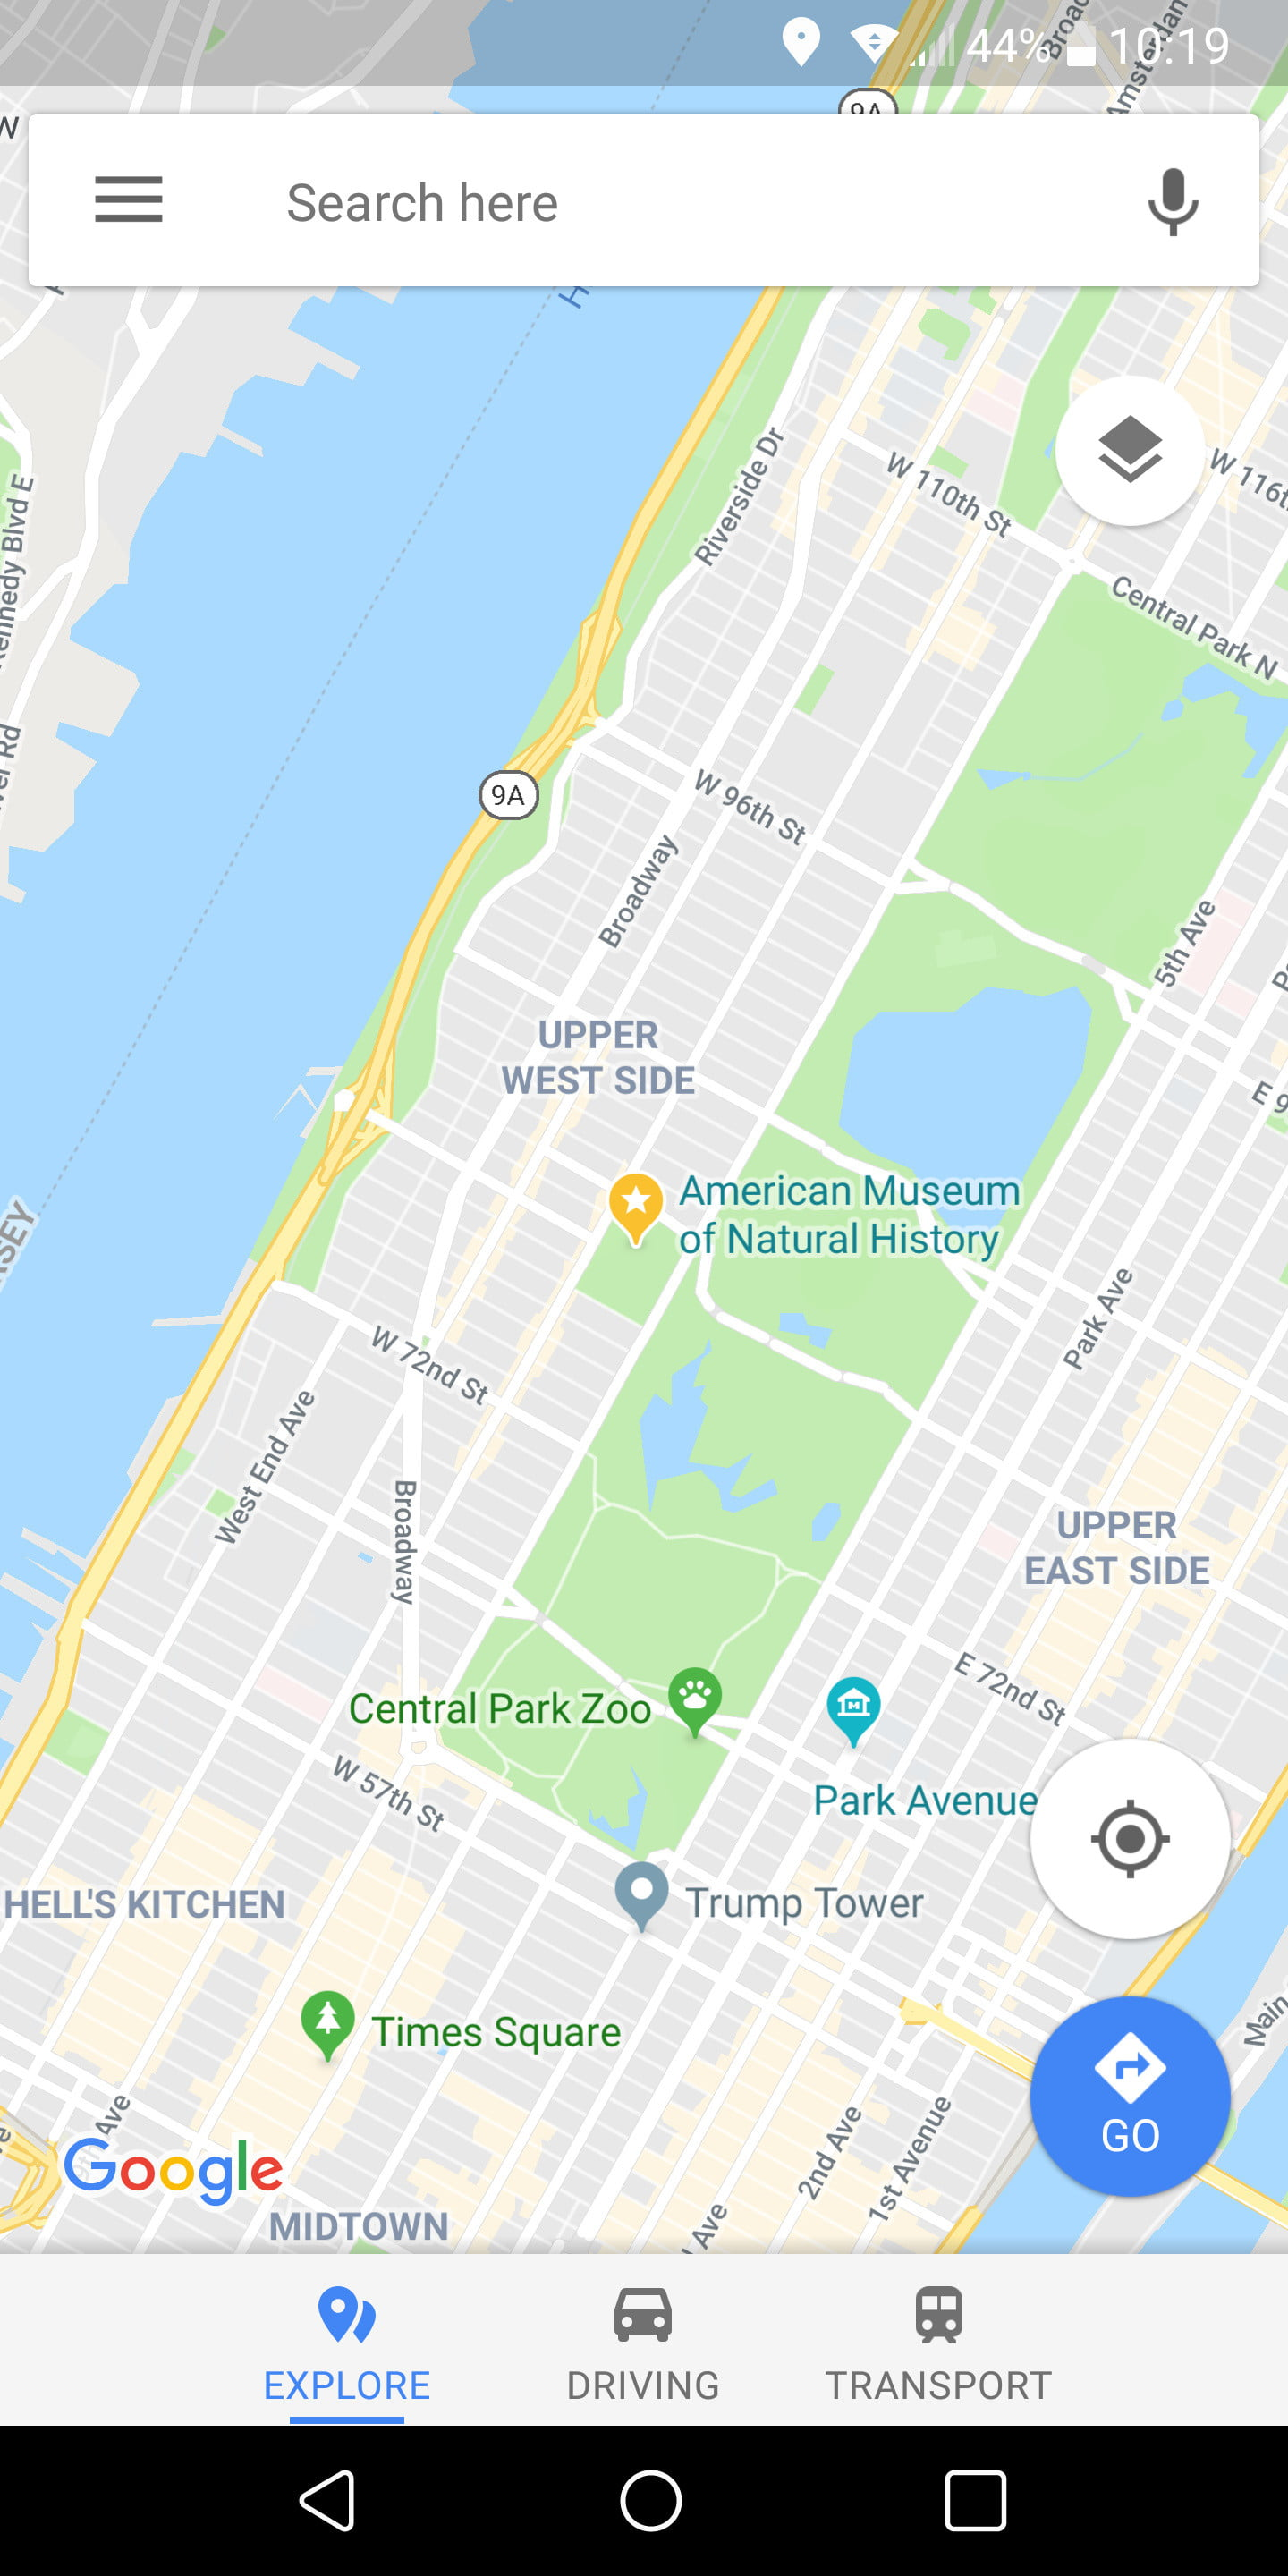 How To Use Google Maps Digital Trends 2nd Judicial Circuit Historical Society Find Things Nearby